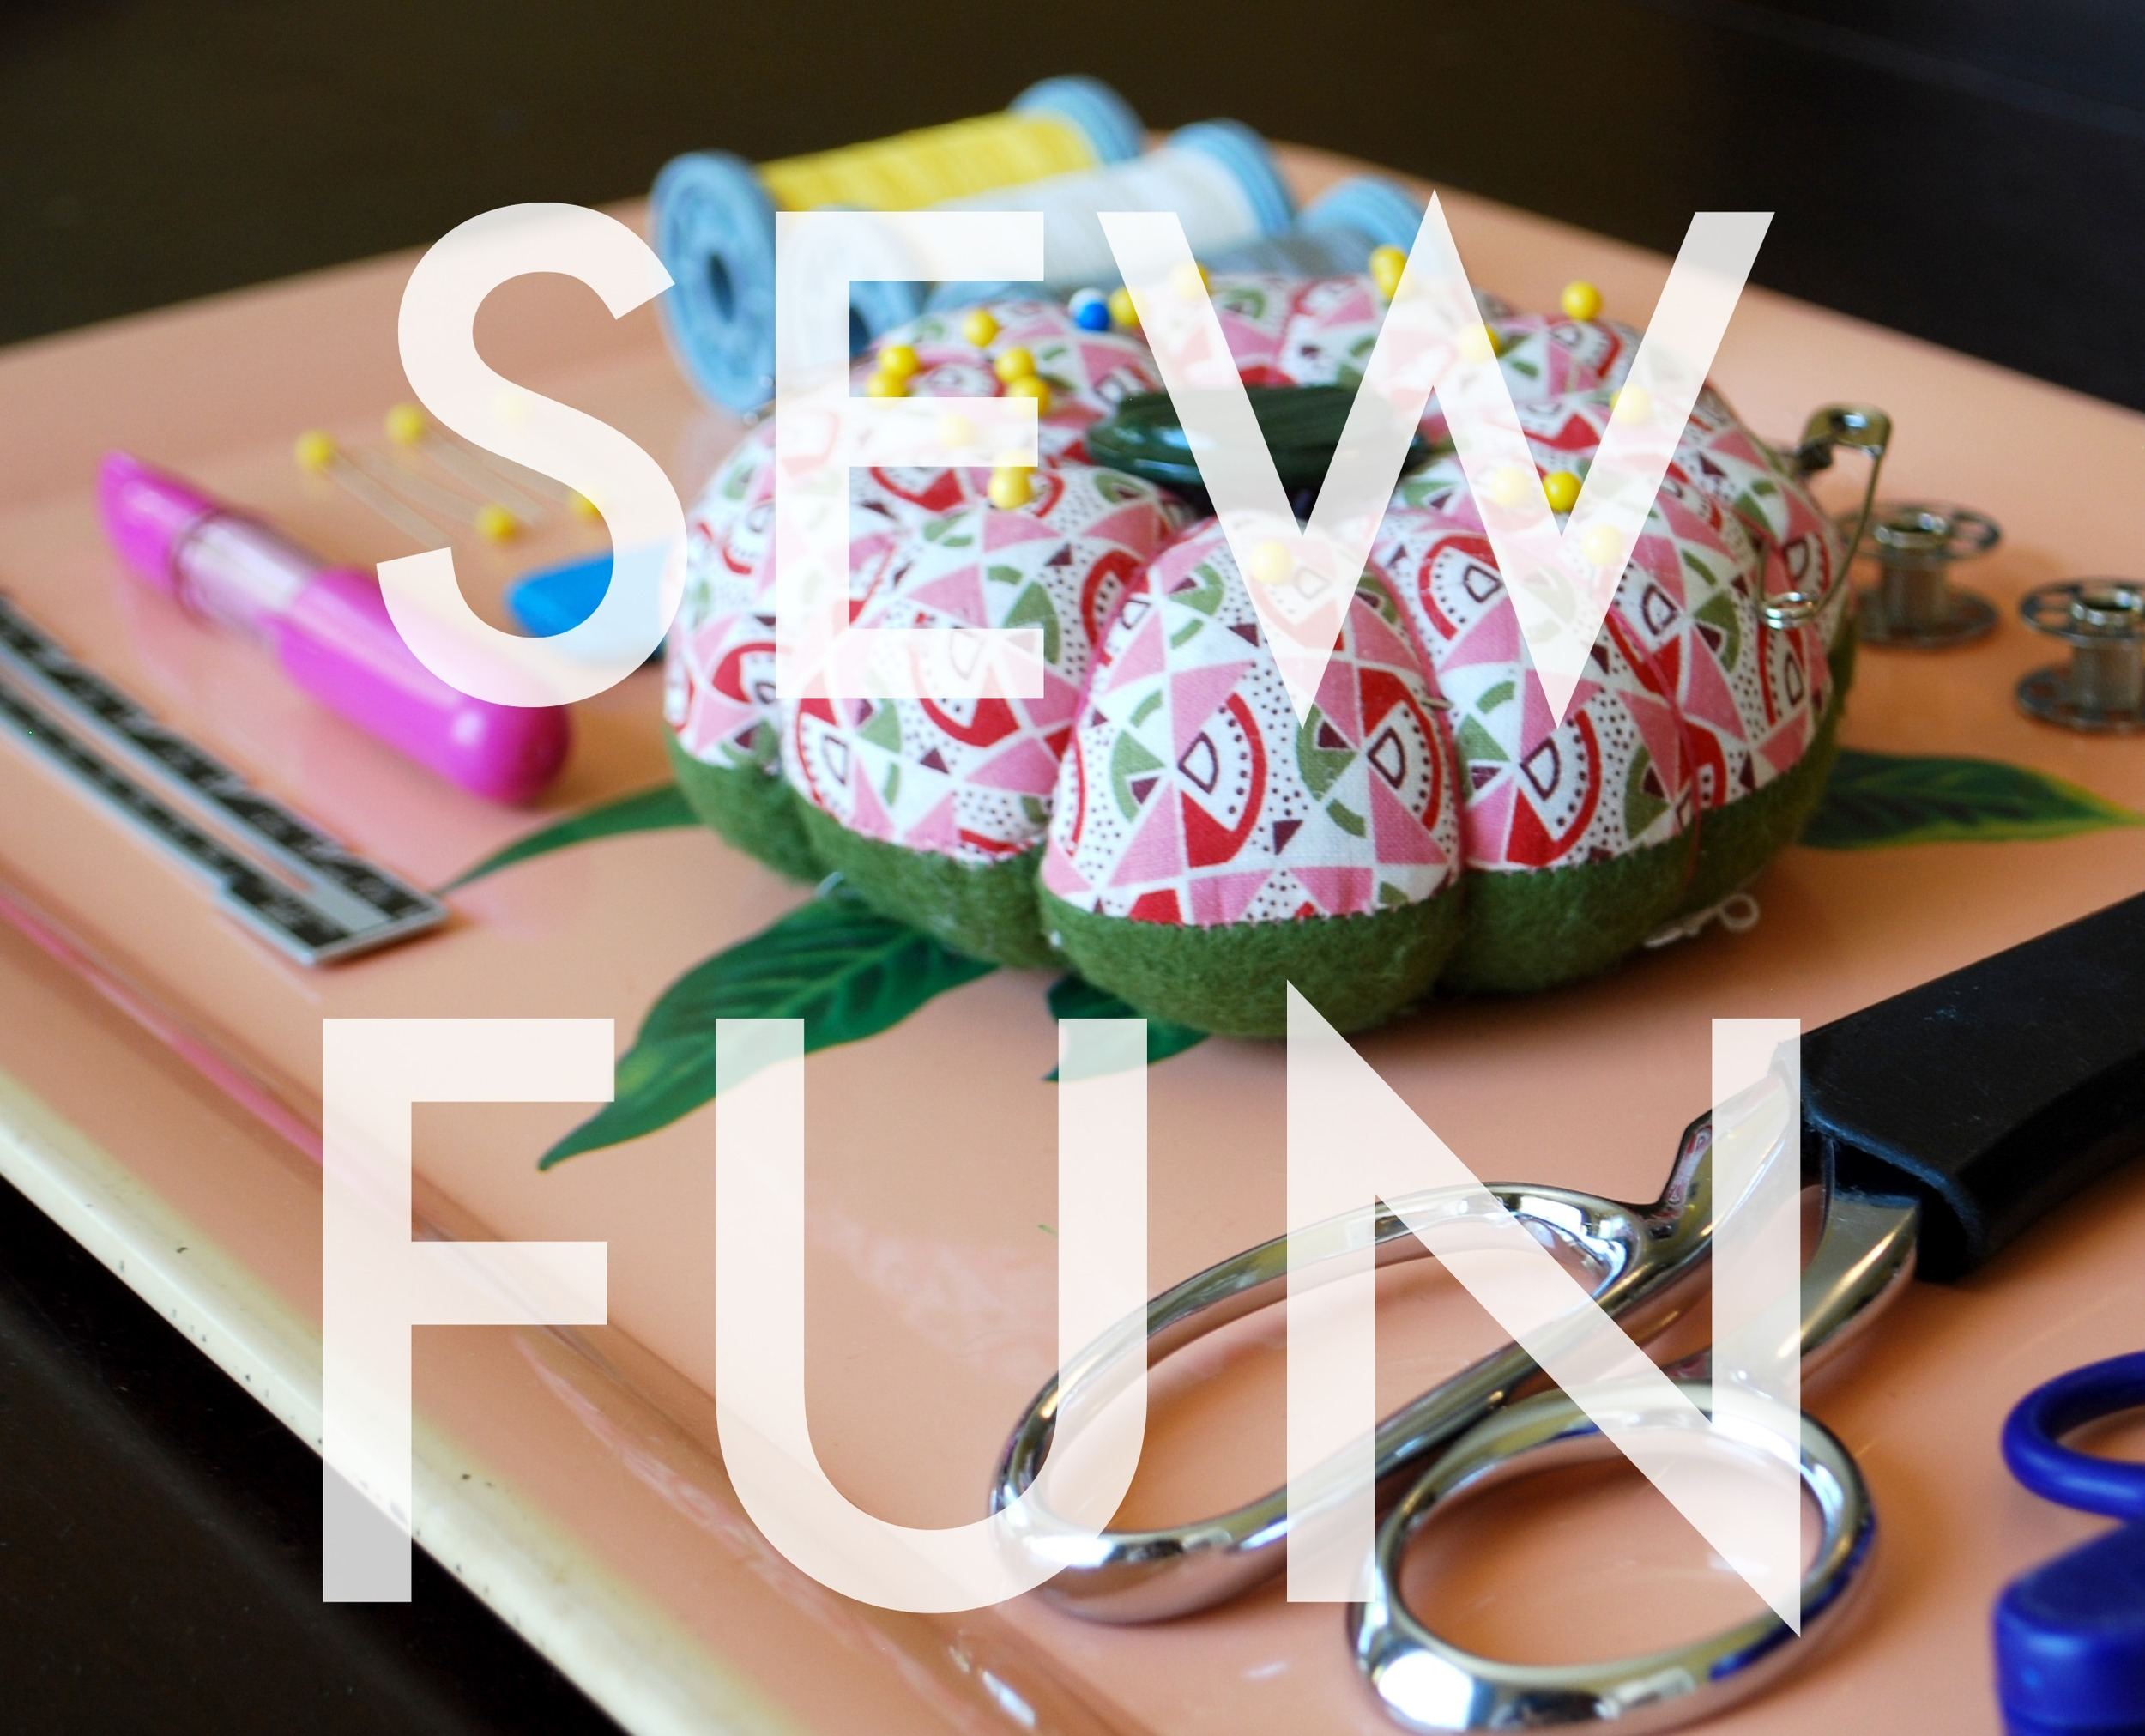 Sew Fun Workshop | Sew You Studio.com